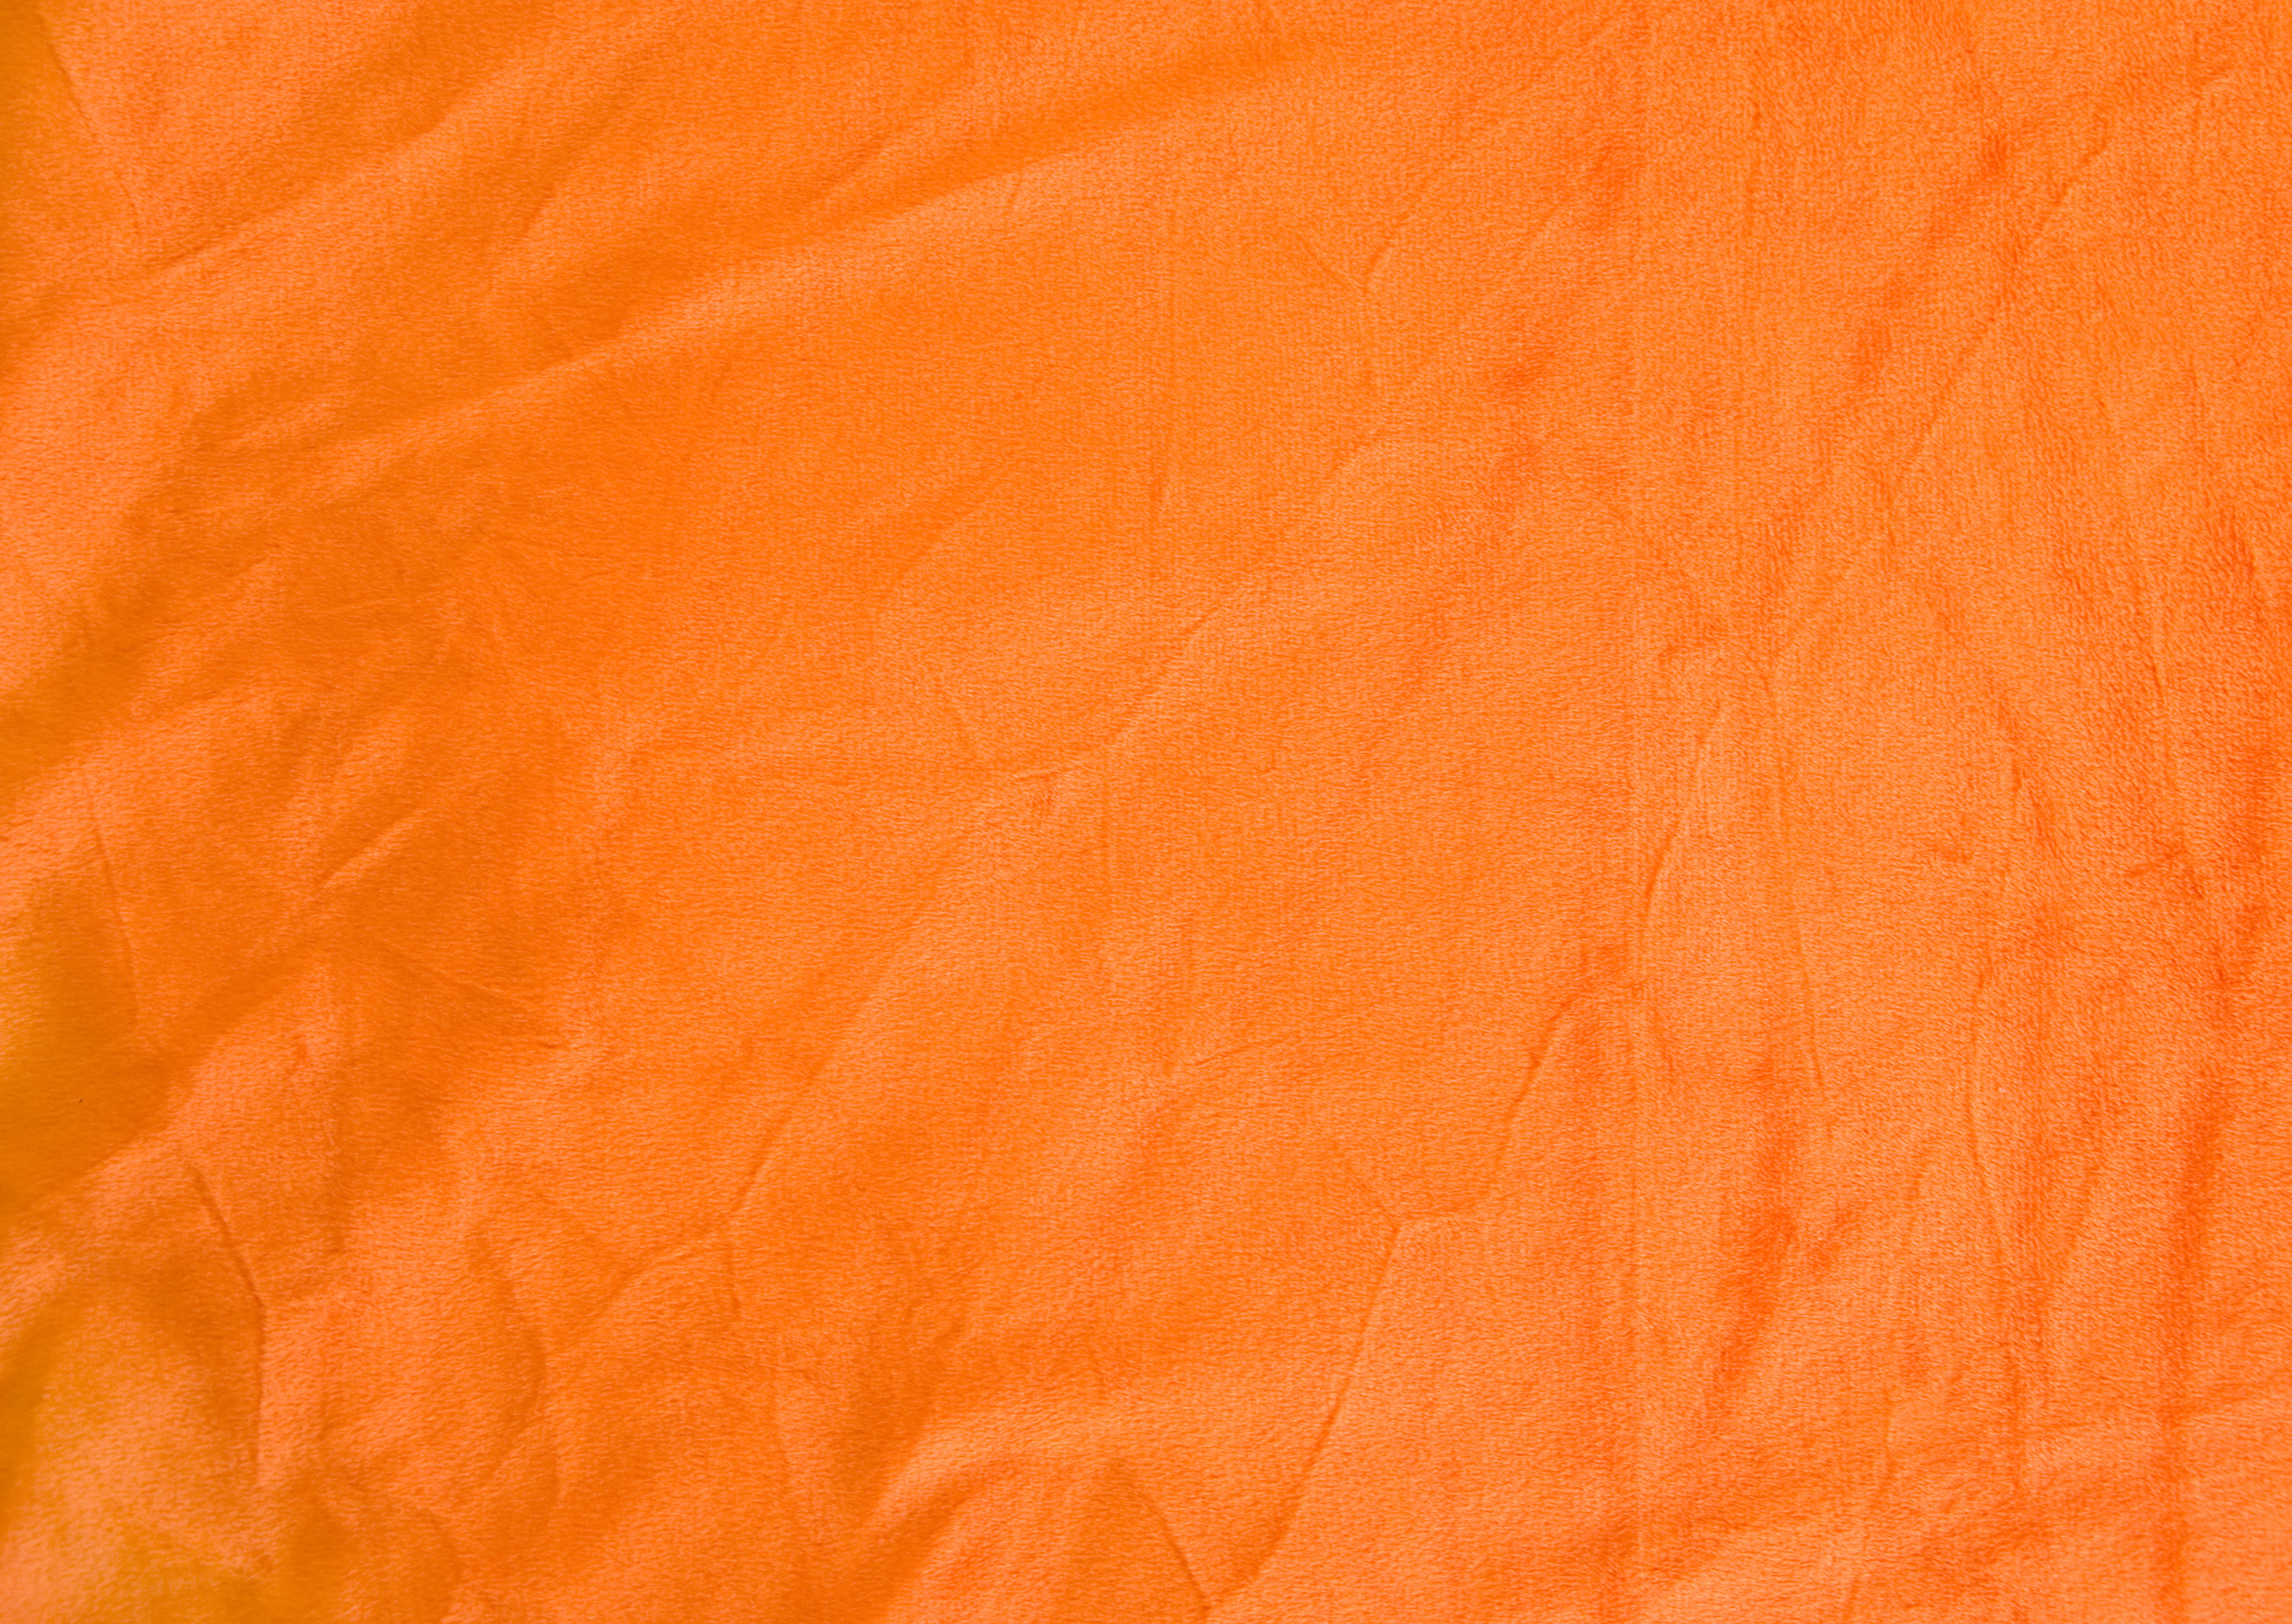 Orange Texture Pictures To Pin On Pinterest Pinsdaddy